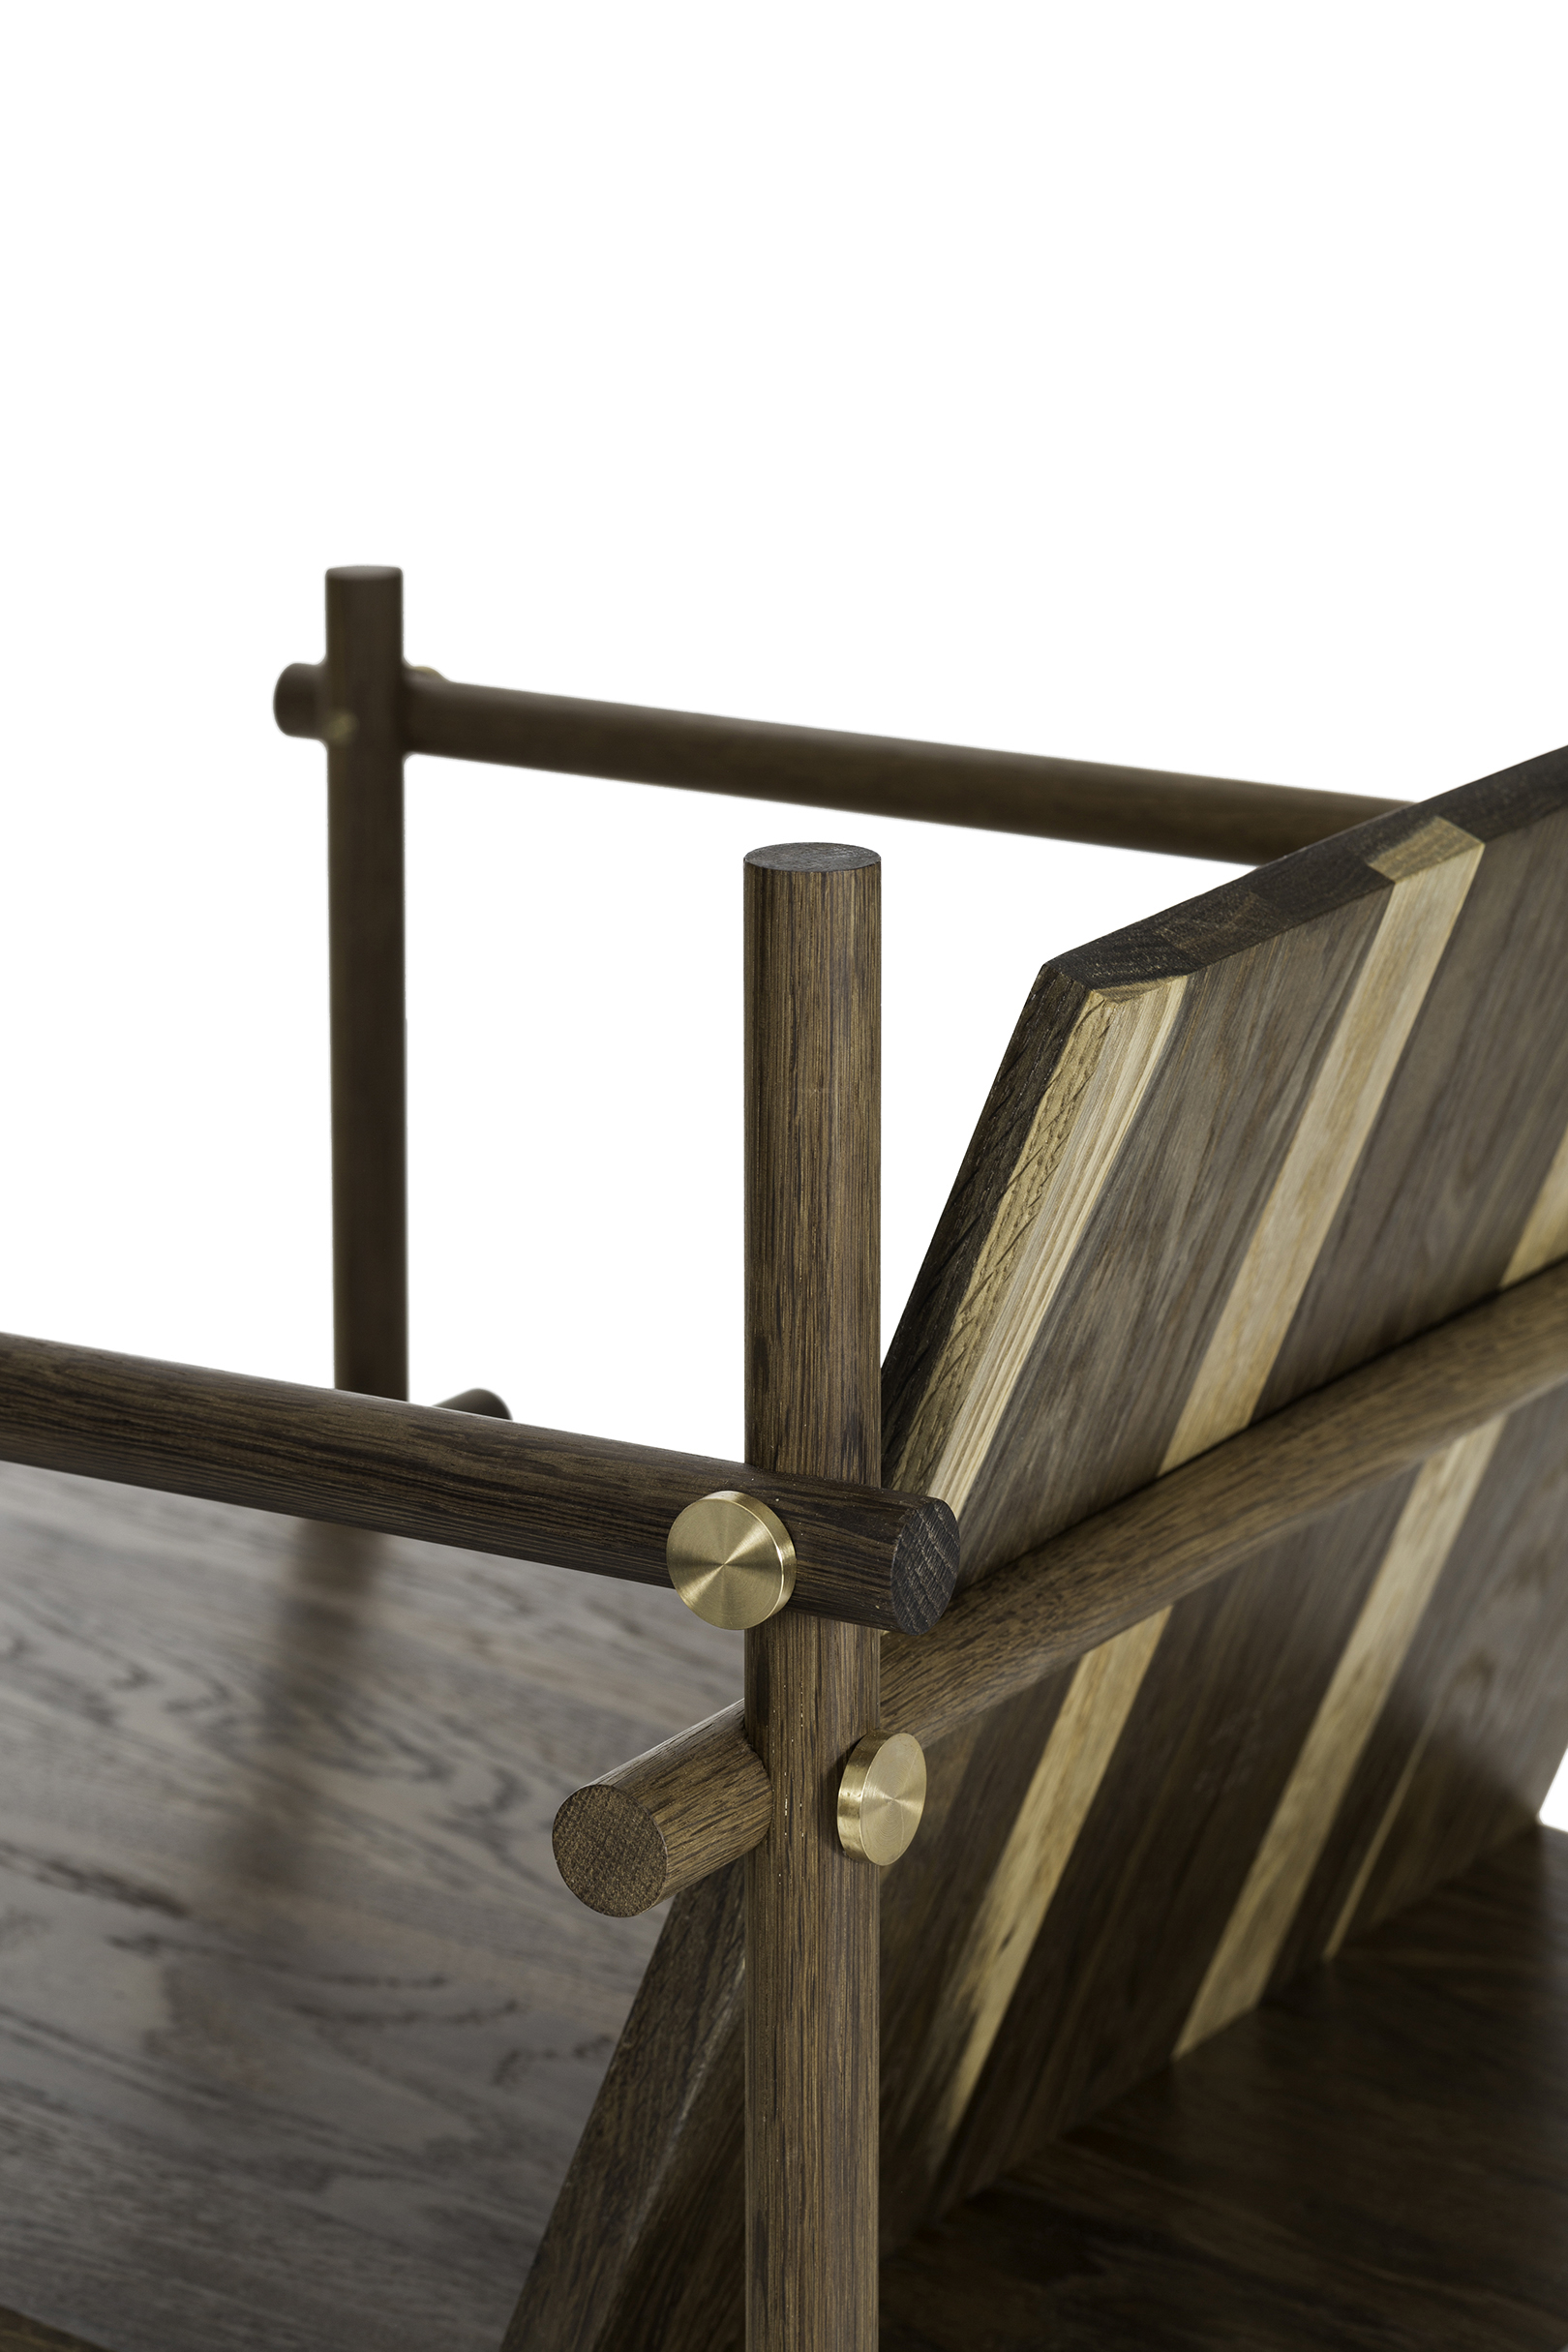 Useful Chair by Sanghyeok Lee